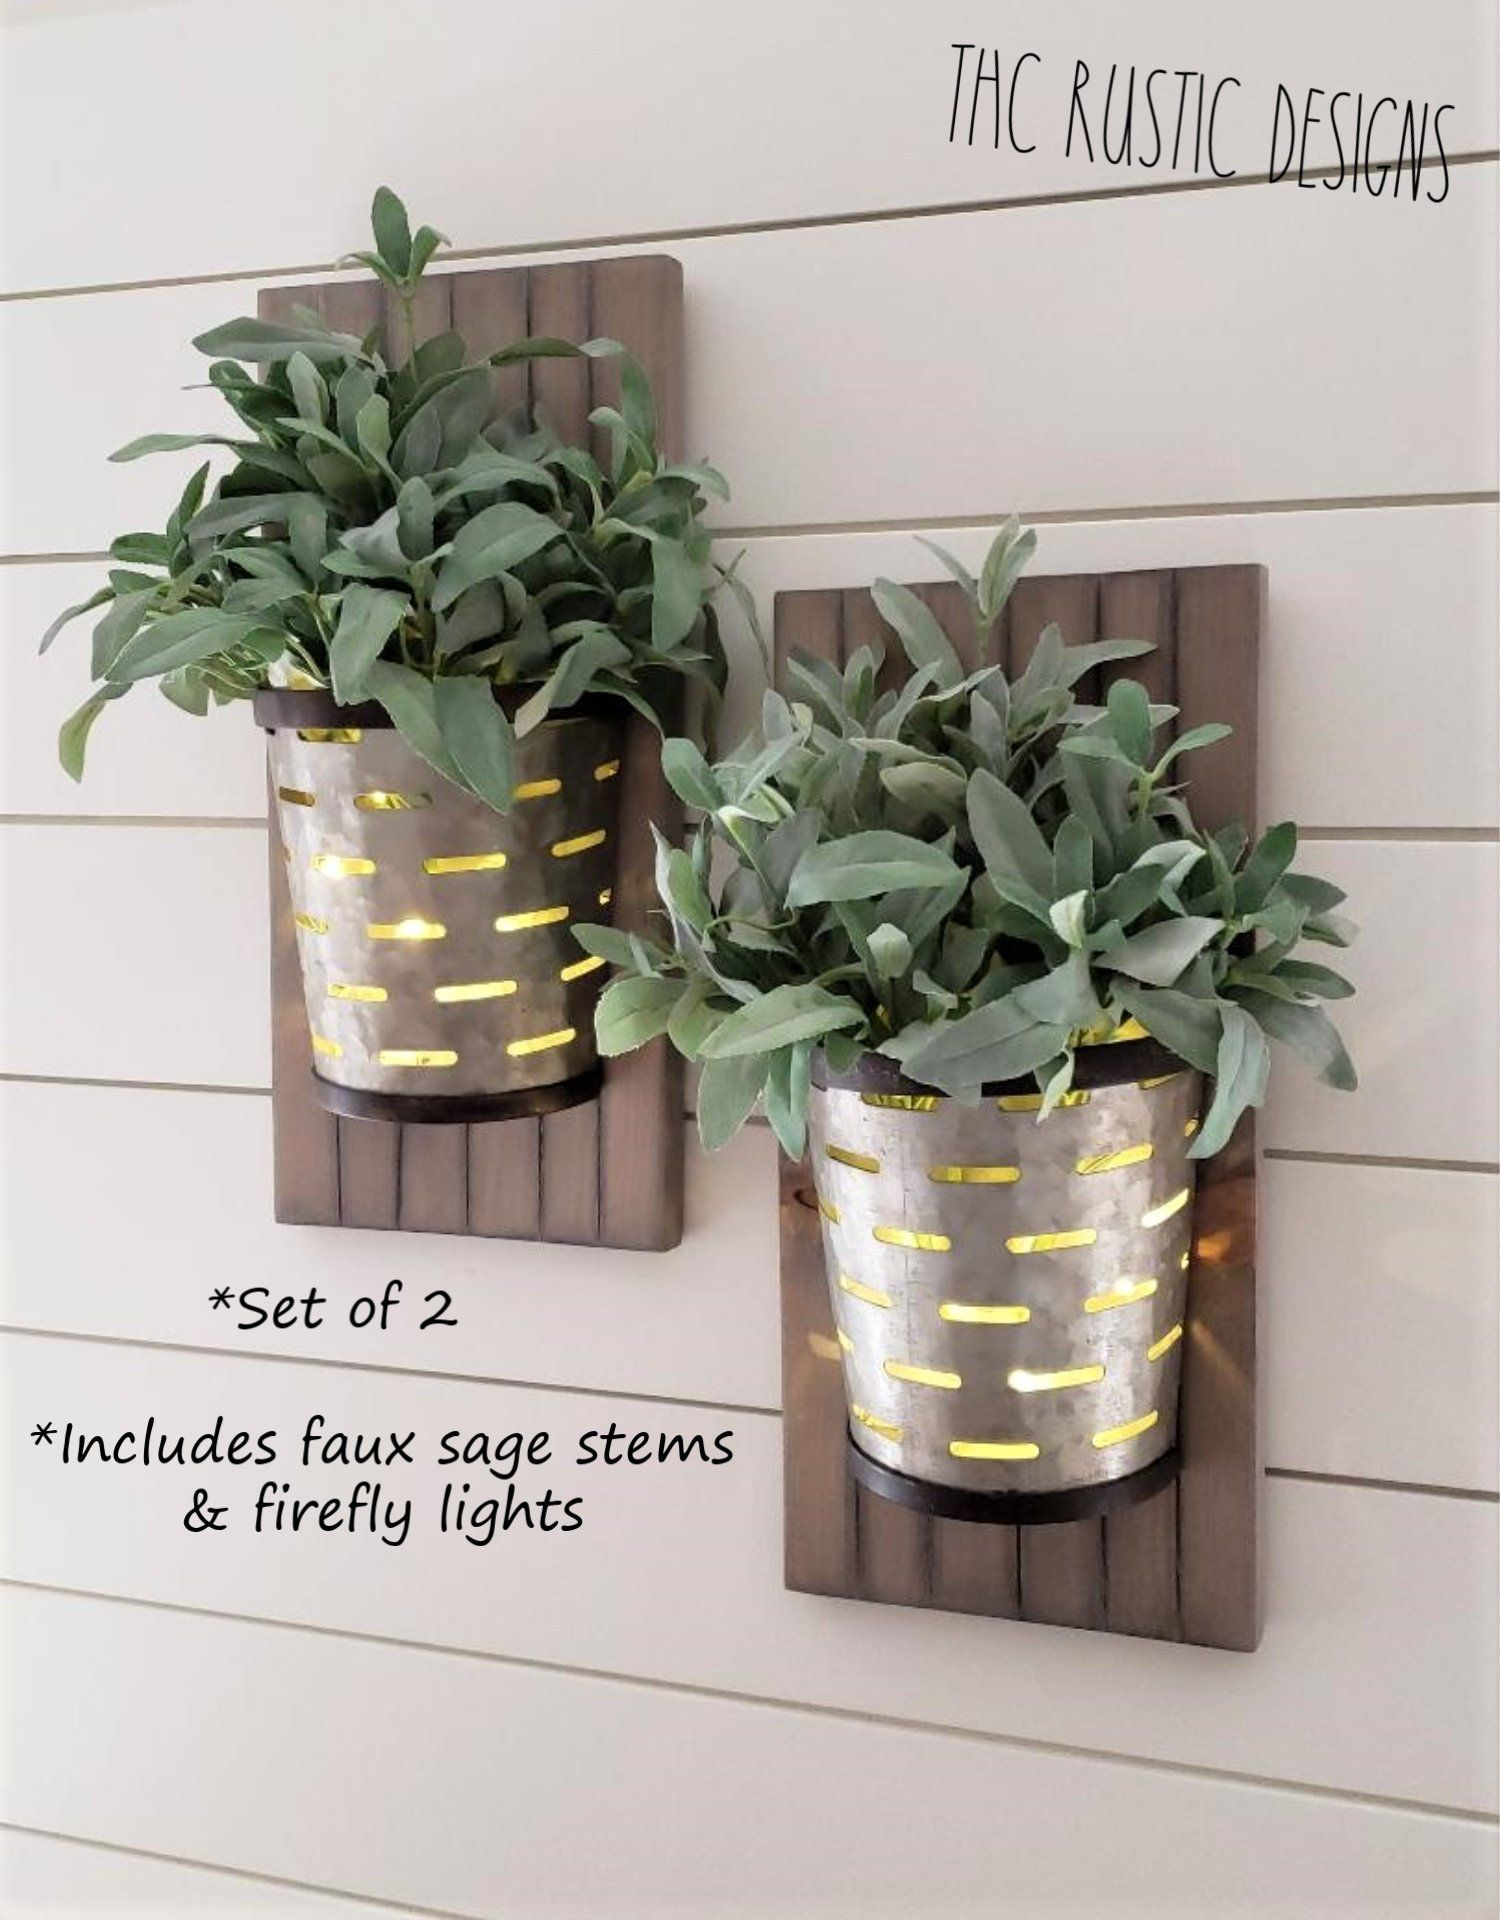 Galvanized Metal Olive Bucket Wall Planter Metal Wall Planter Olive Bucket Metal Wall Sconce Metal Wall Planters Reclaimed Wood Decor Hanging Wall Planters